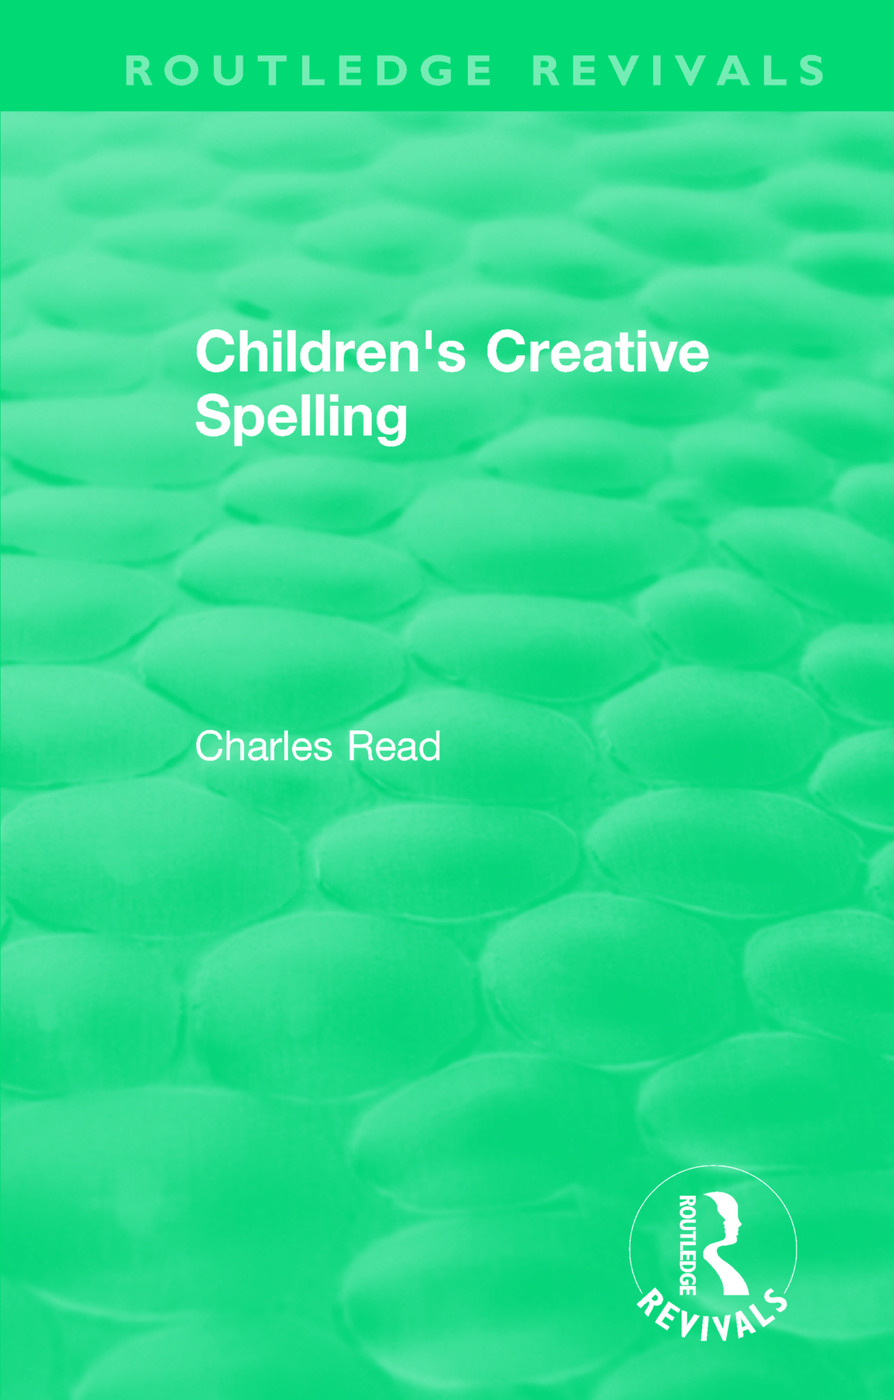 Children's Creative Spelling book cover